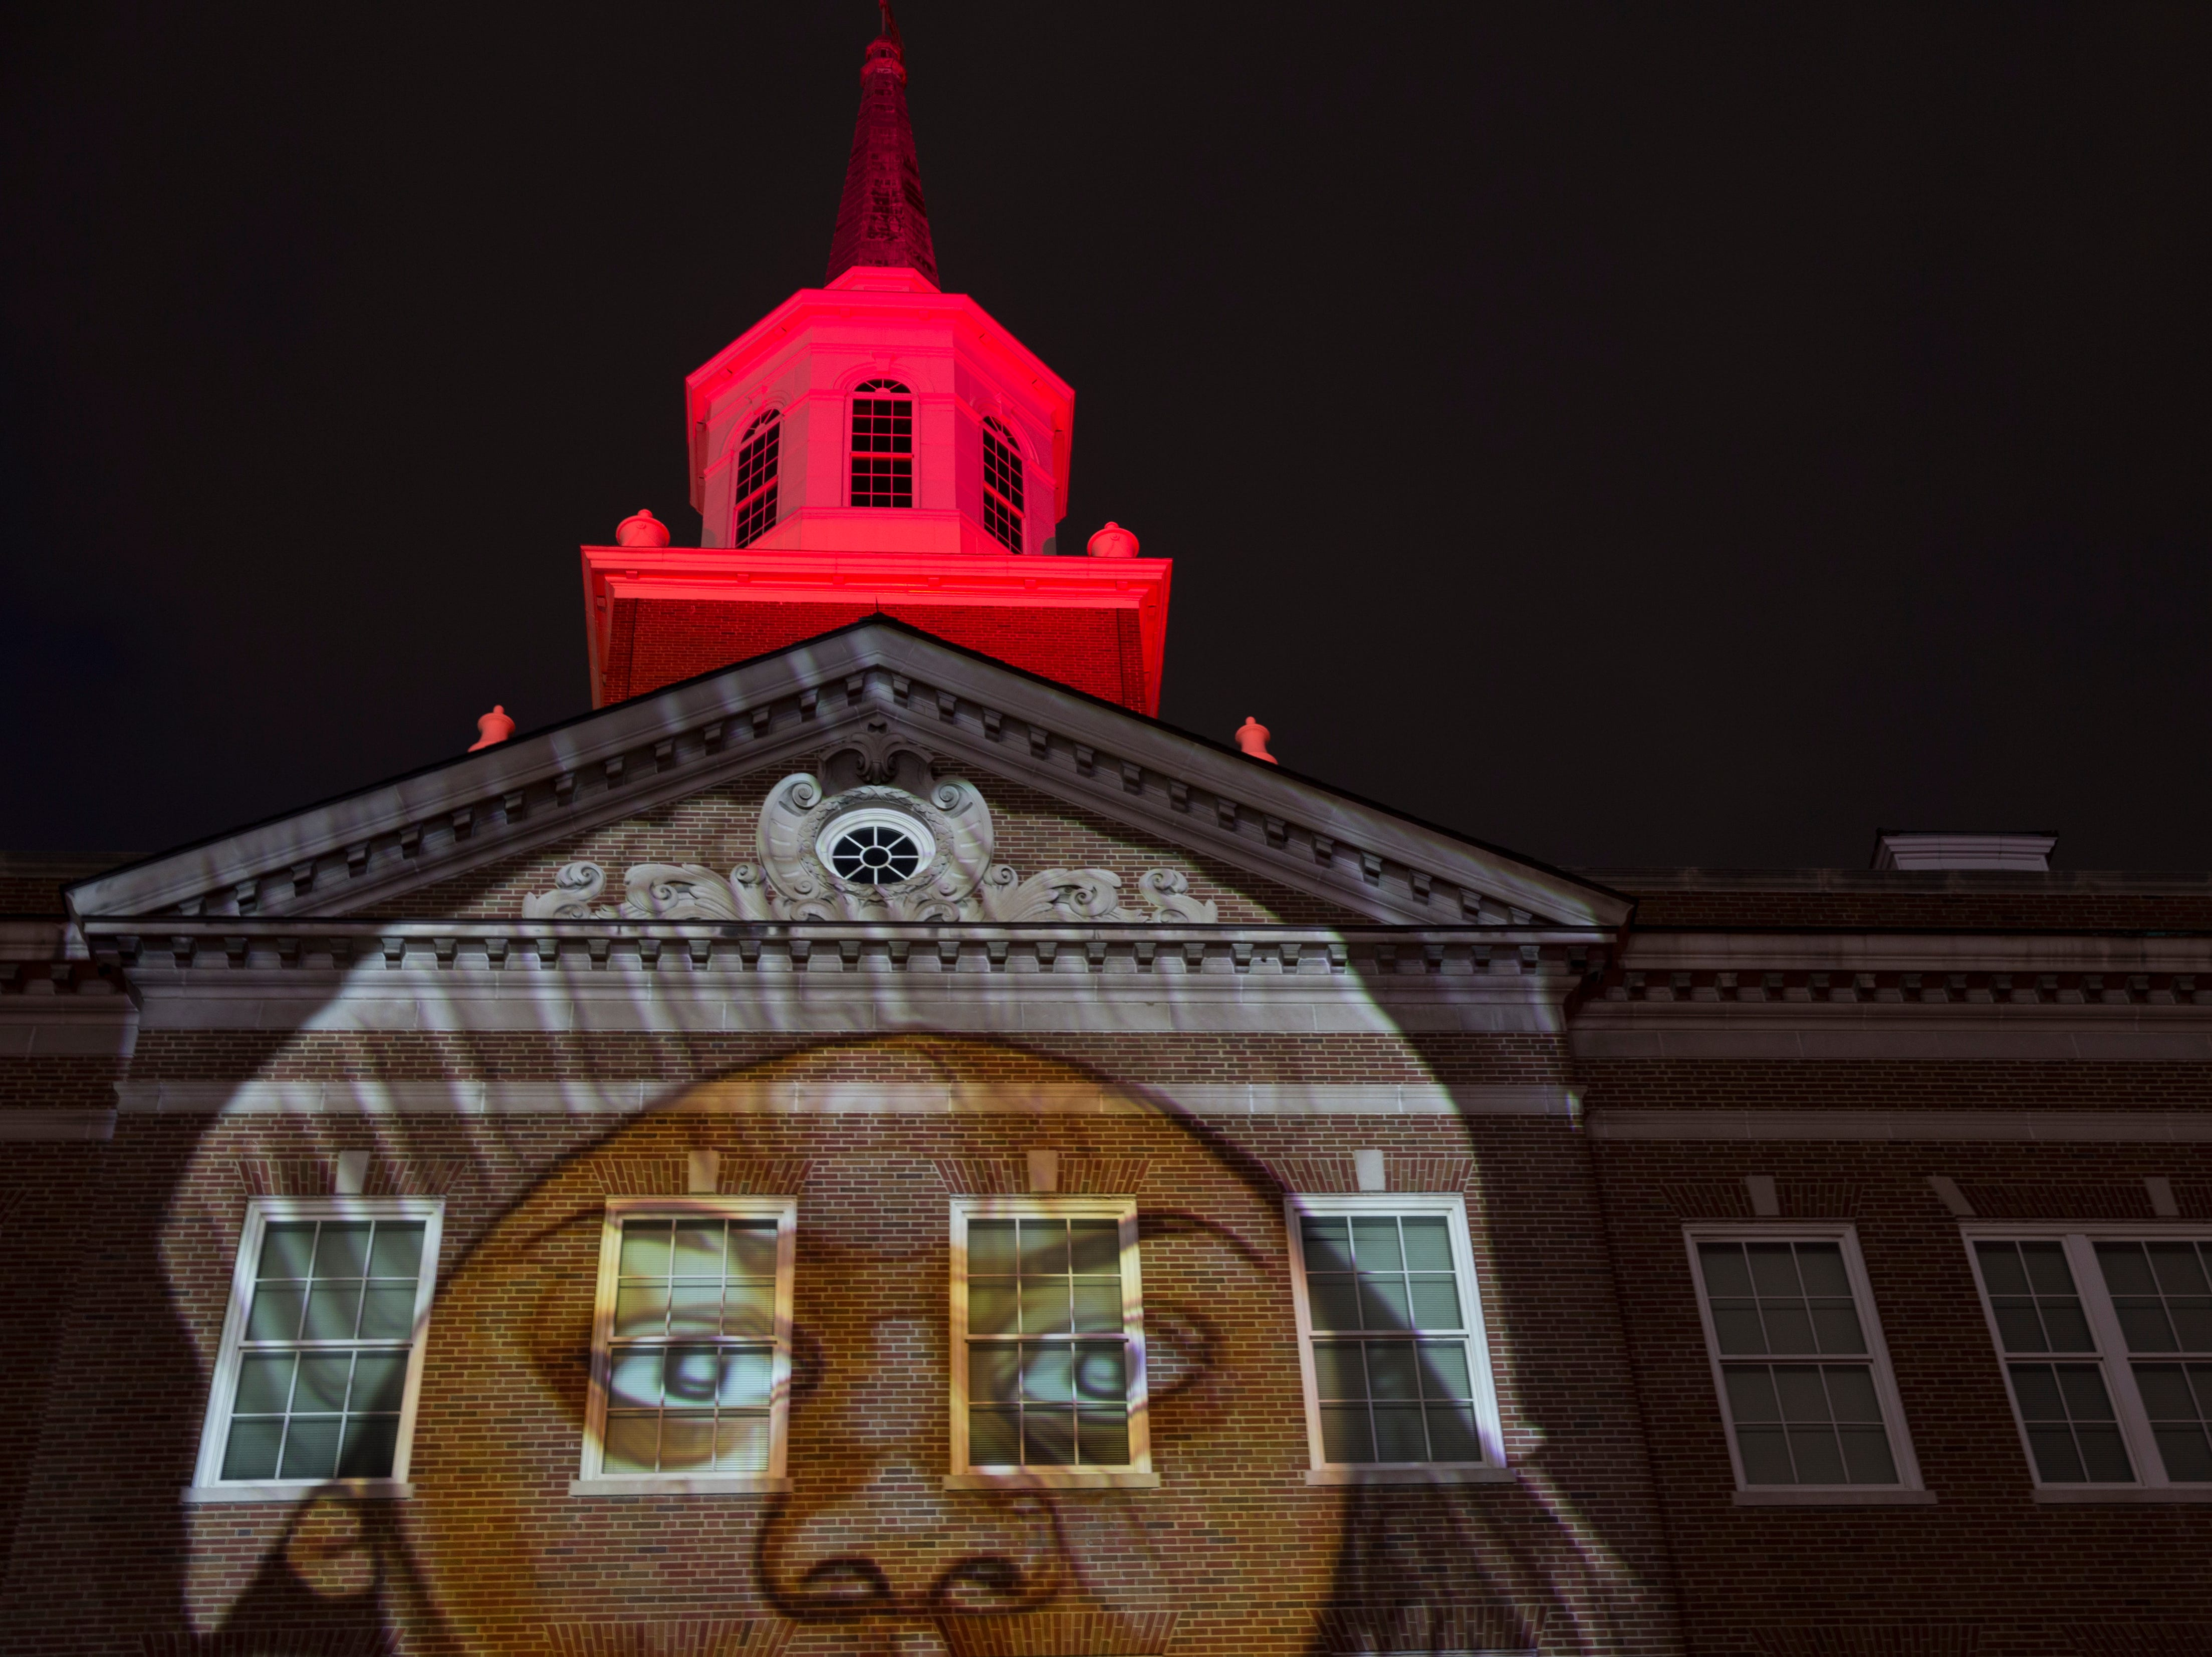 MOMENTUM Projection-Mapping Light Show lit McMicken Hall to celebrate UC's Bicentennial during preview night Friday April 5, 2019. Photo by Lisa Ventre/University of Cincinnati